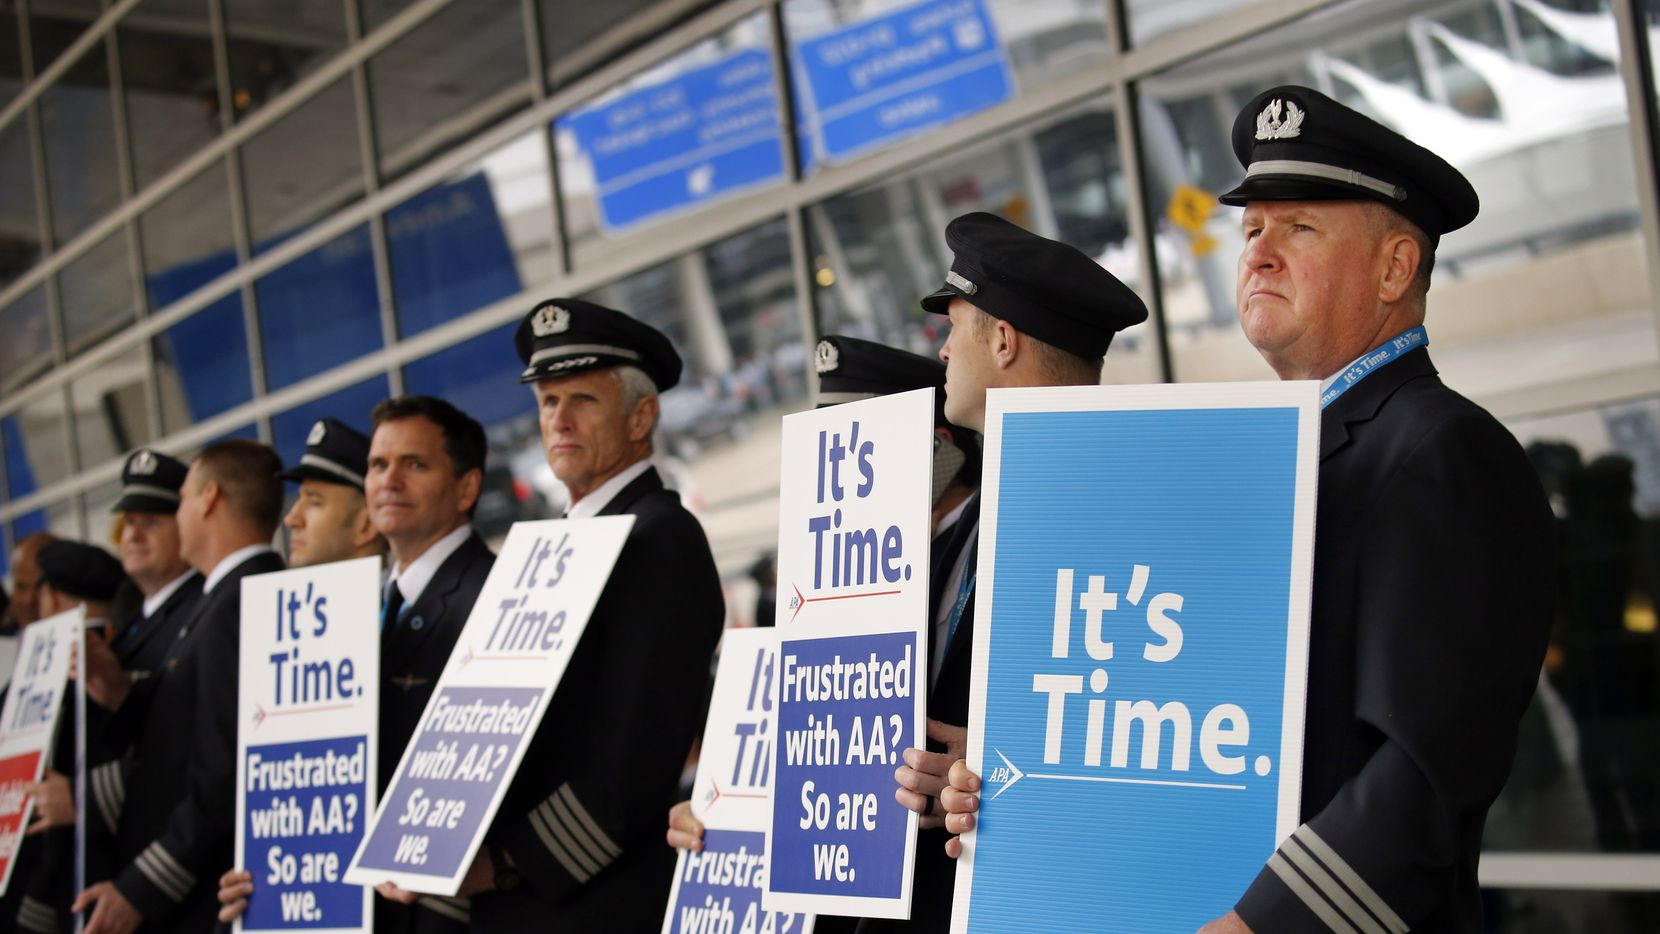 American Airlines first officer Ken Abernathy (right) joined pilots representing the Allied Pilots Association (APA) in rallying for a new contract.  They expected 300, but may more than that showed as they stood shoulder-to-shoulder with pickets outside Terminal D at Dallas-Fort Worth International Airport, Wednesday, January 29, 2020. They want American to improve scheduling, company transparency and accountability, and quality of work life. (Tom Fox/The Dallas Morning News)